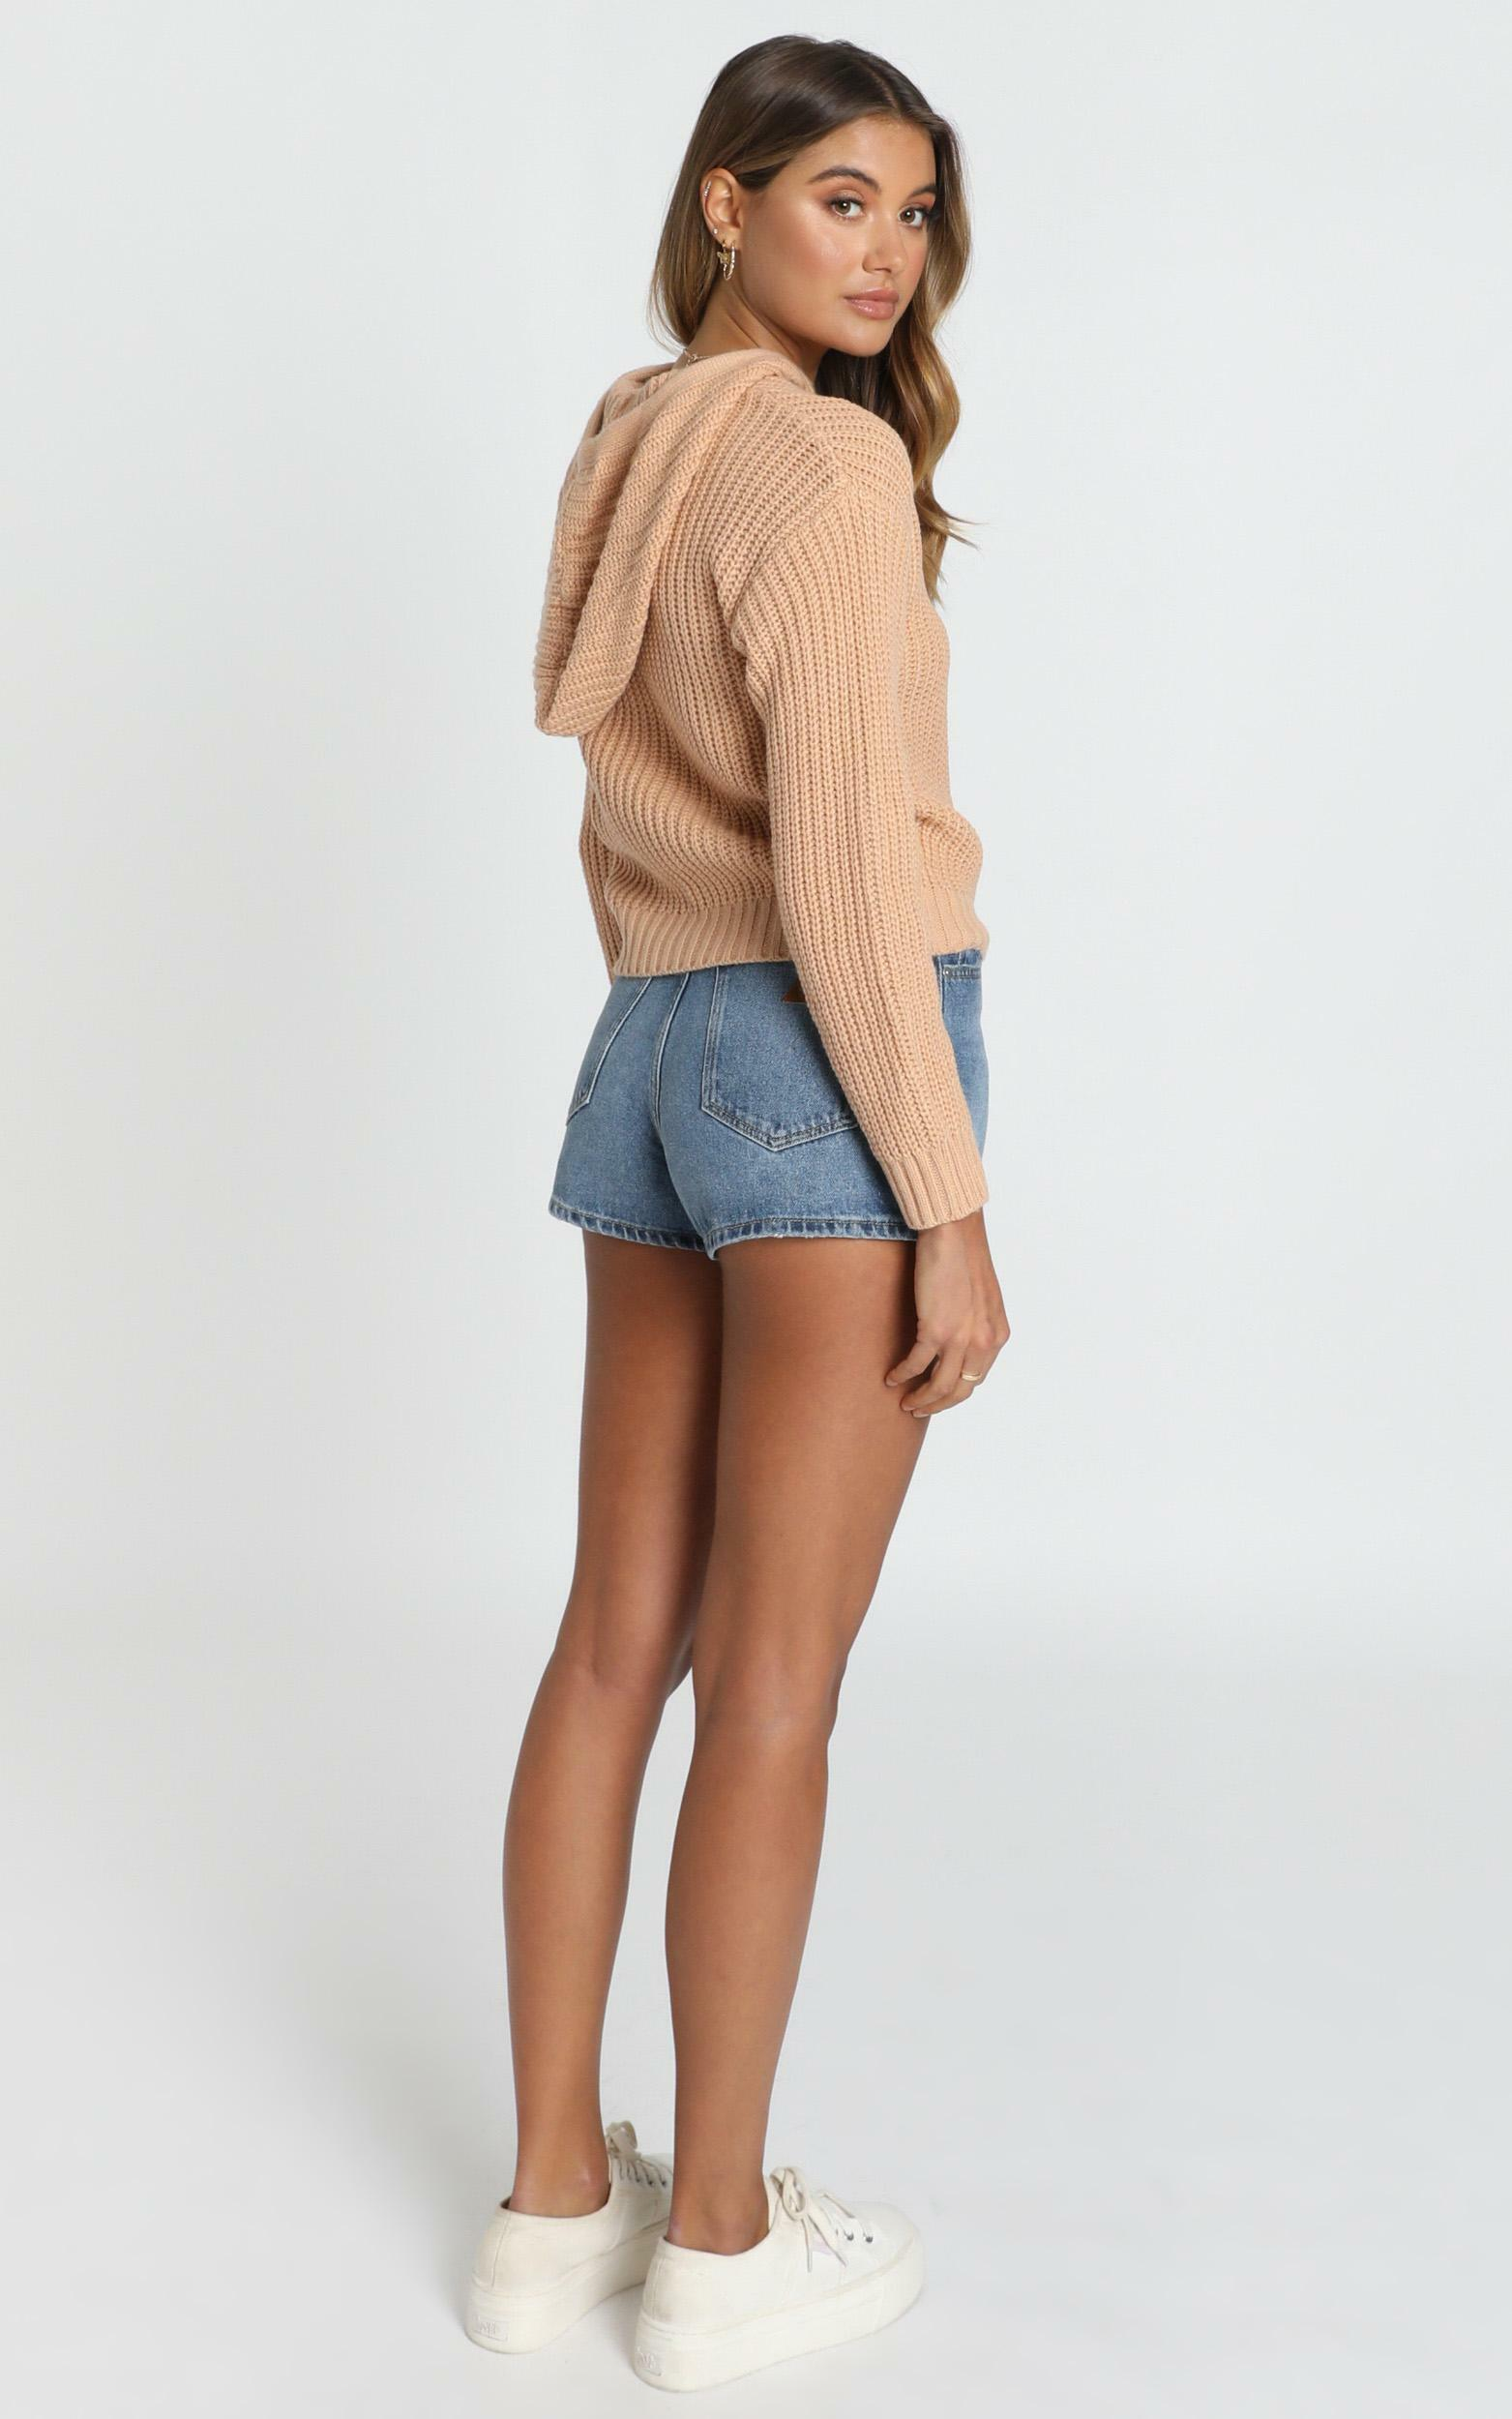 Only Love Hooded Knit Jumper in tan - L/XL, Tan, hi-res image number null